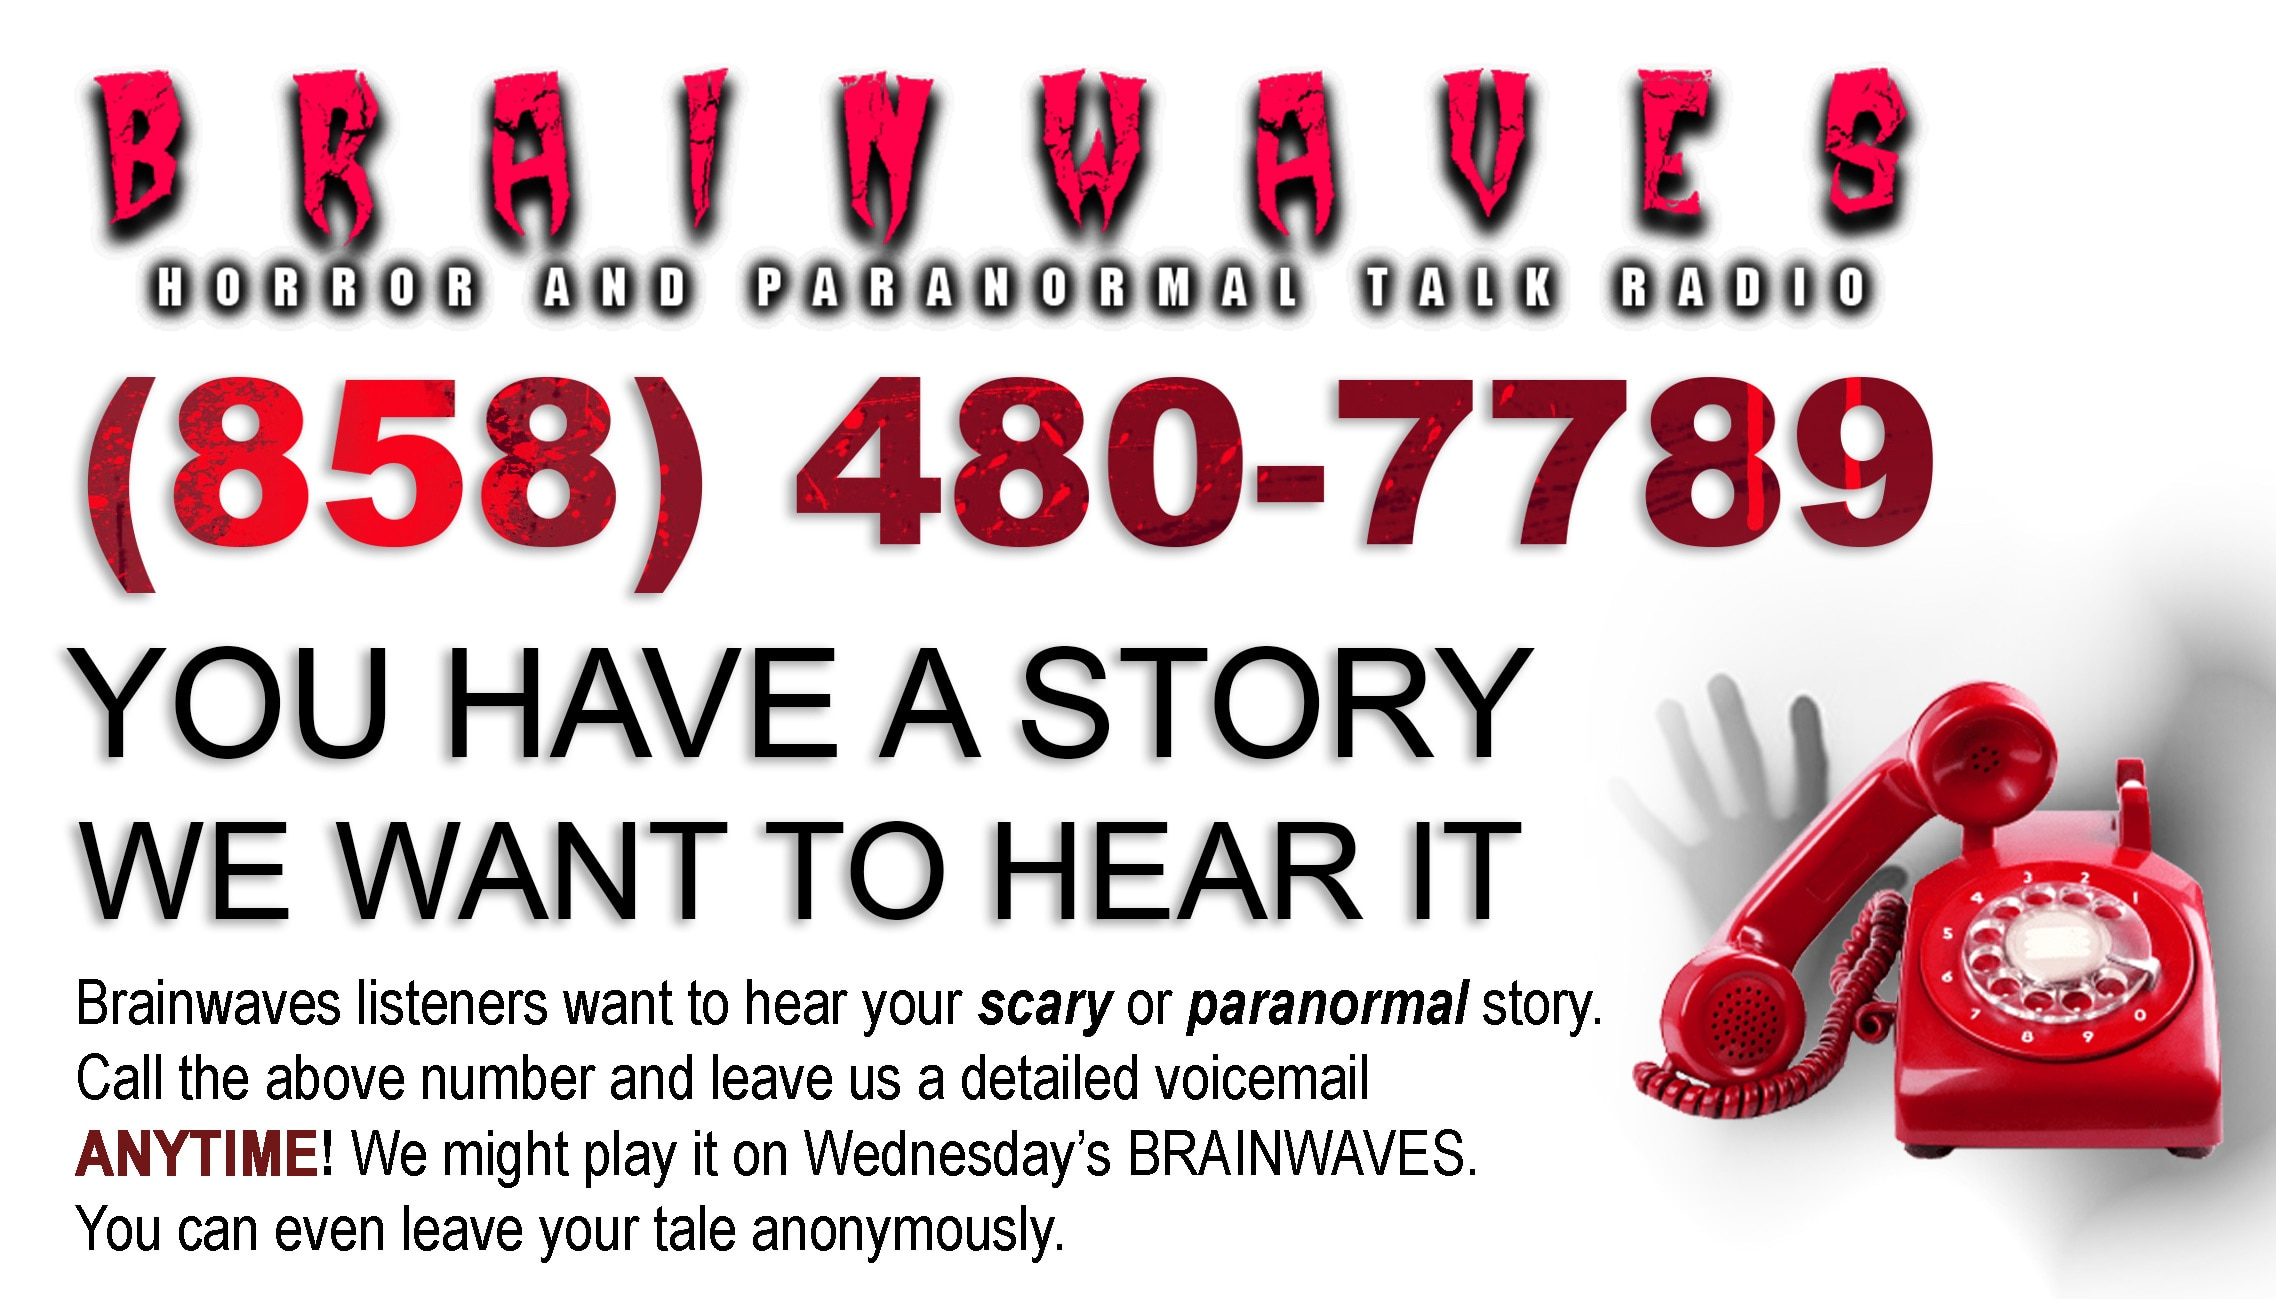 brainwaves call now - #Brainwaves Episode 79: Kyra Schon from the Original Night of the Living Dead - LISTEN NOW!